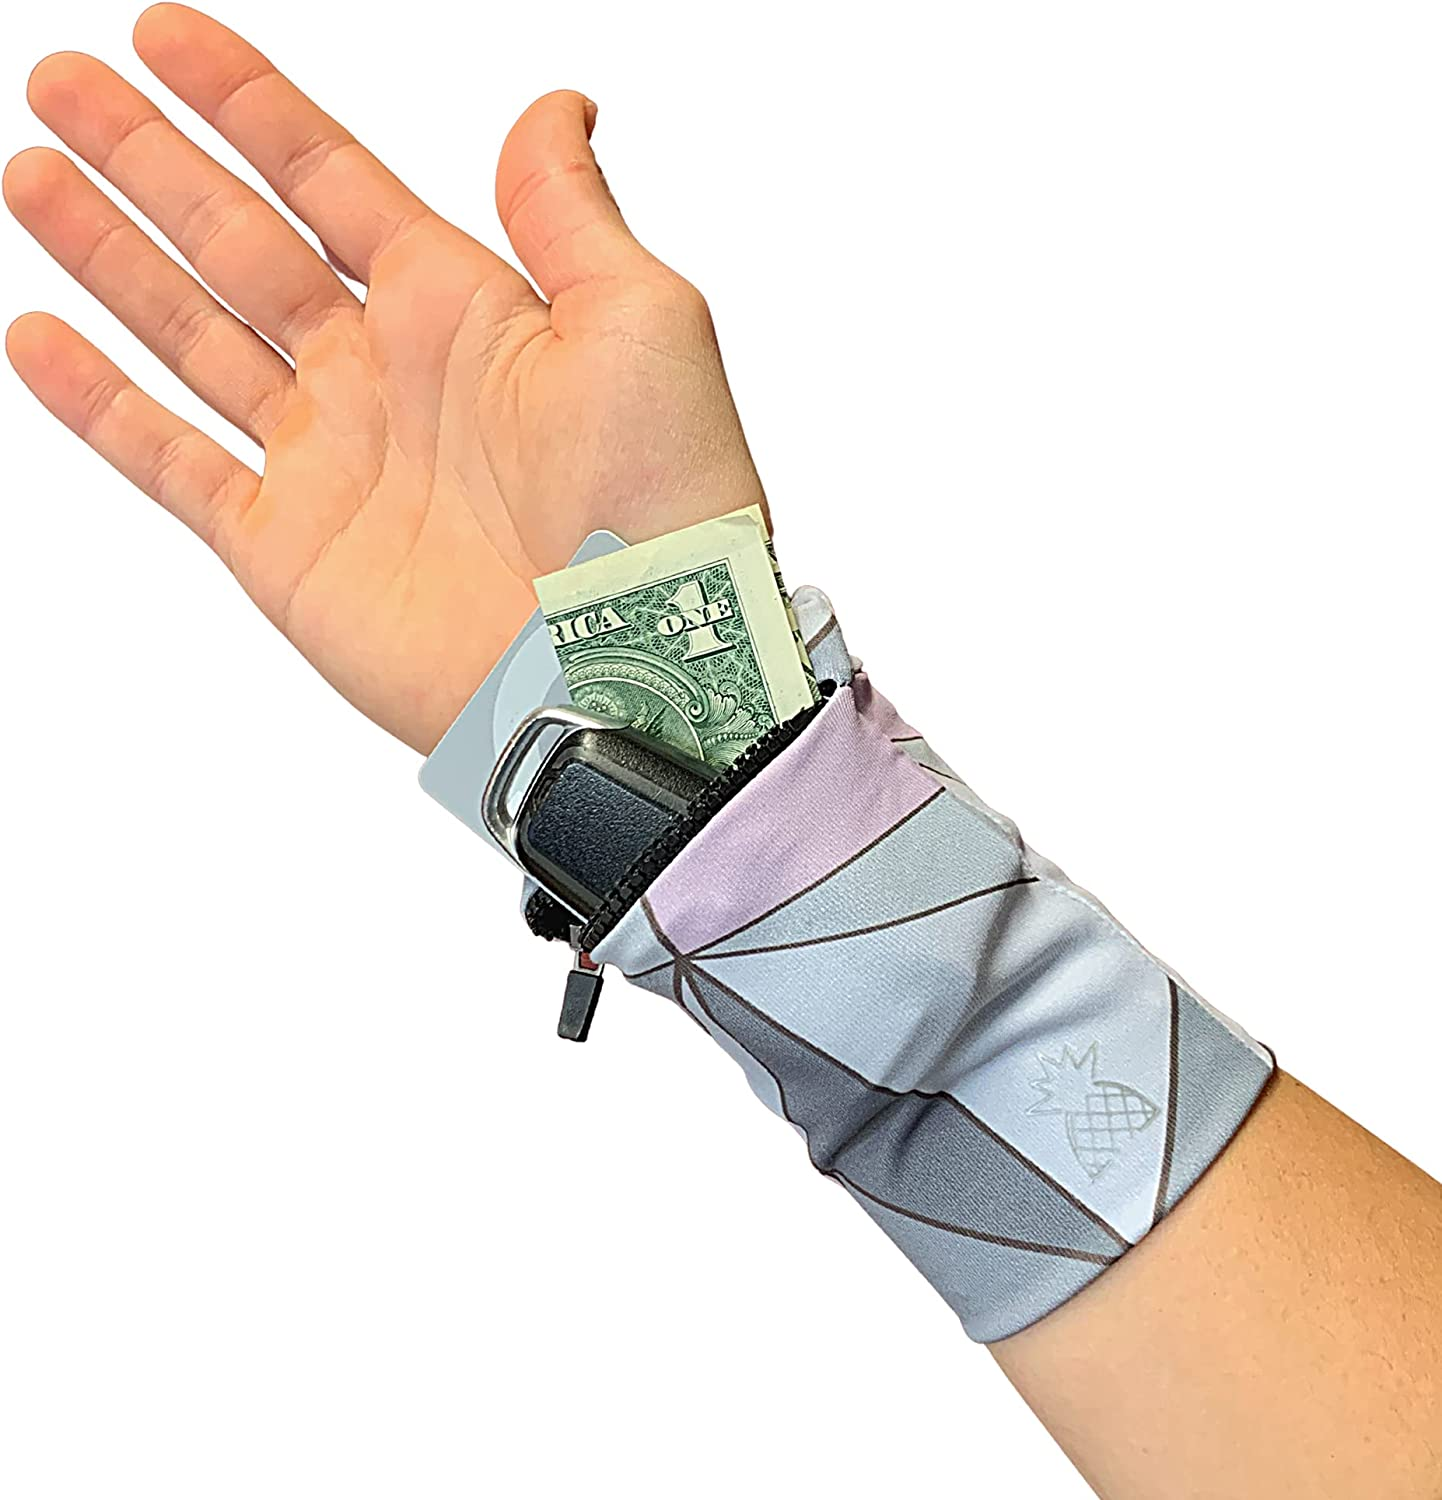 Easy-to-use Premium Wrist Locker - Wallet with Band famous for Zipper Storage